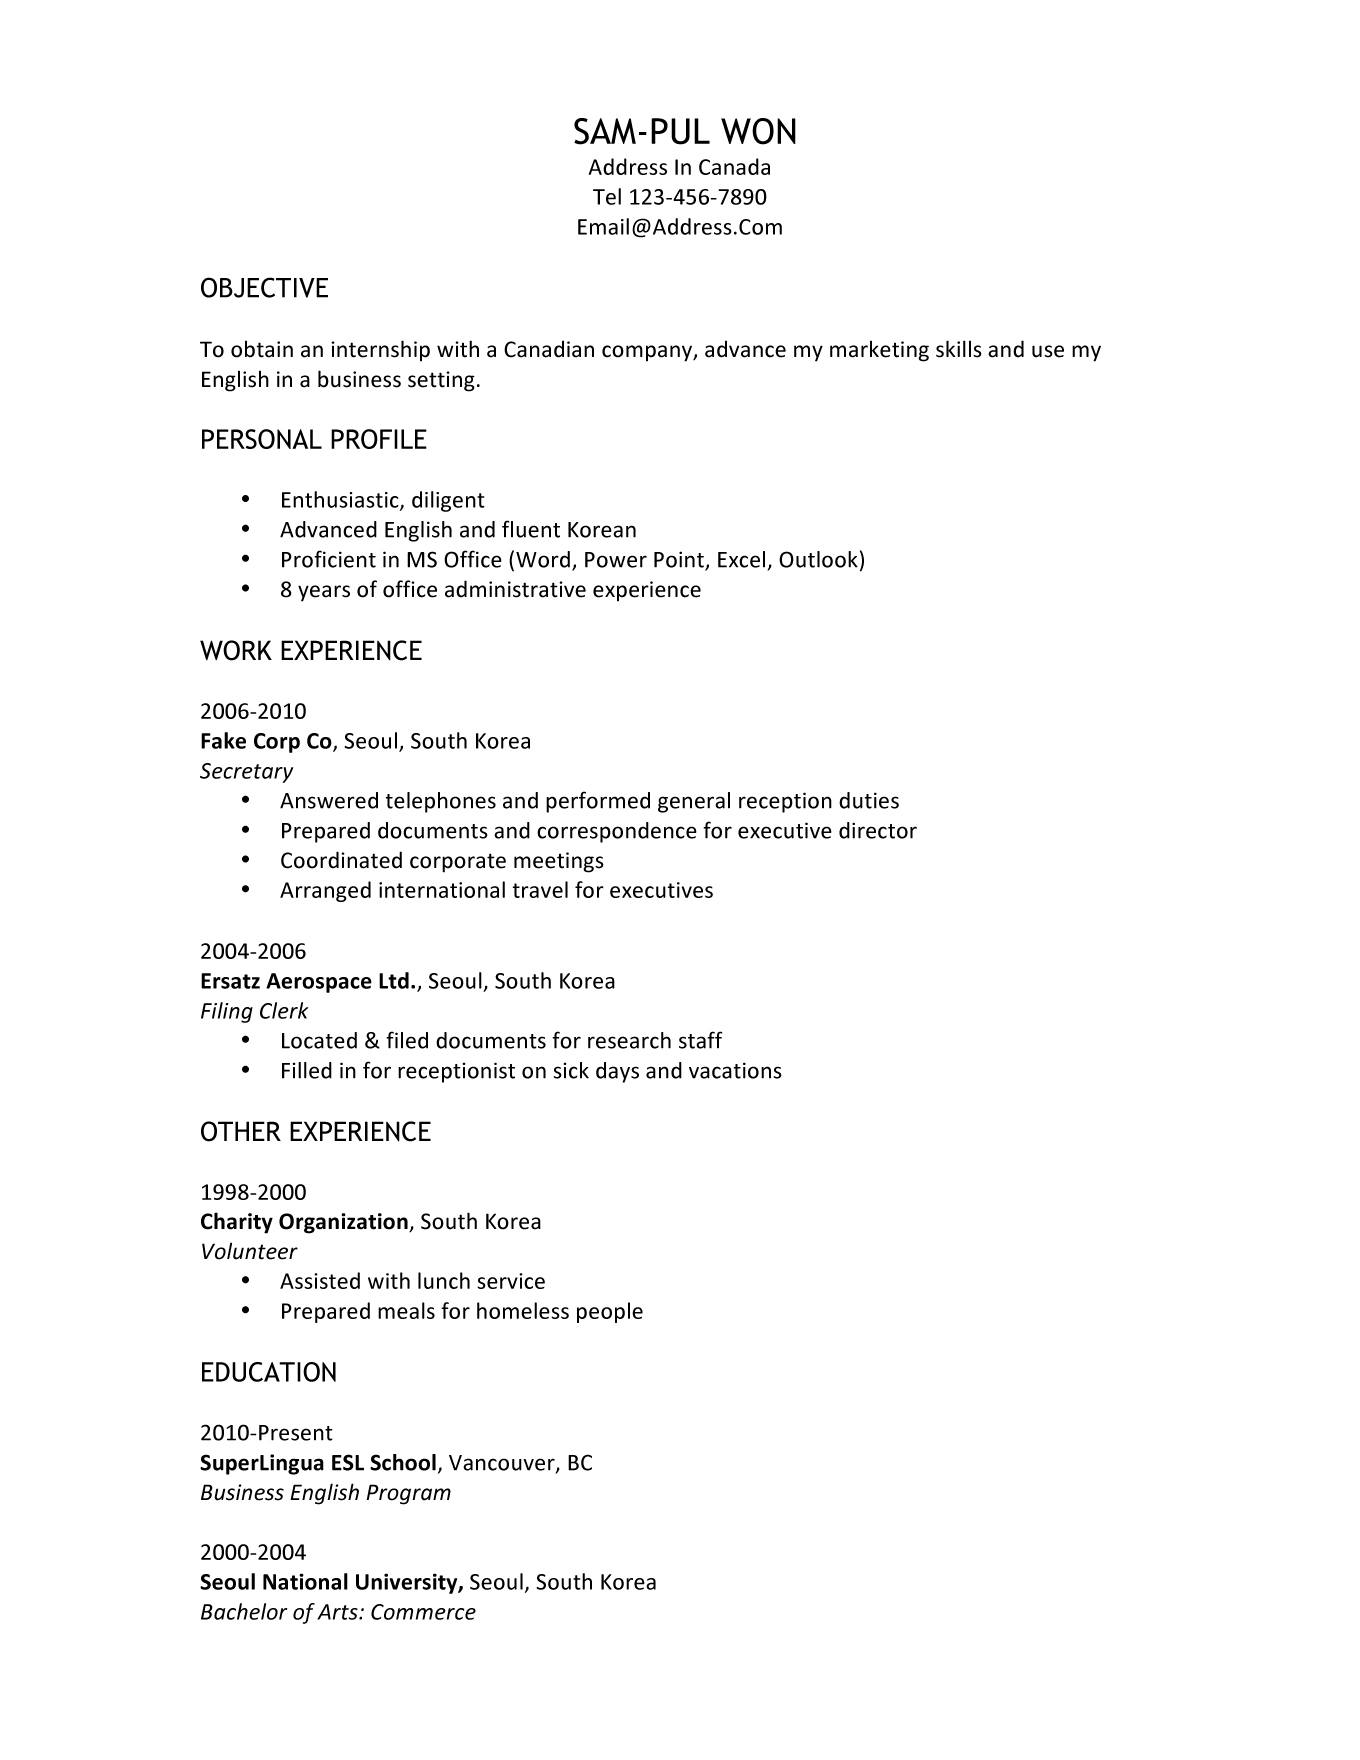 resume referrals upon request professional resume it sample resume maker create professional examples of good resumes - Canadian Sample Resume